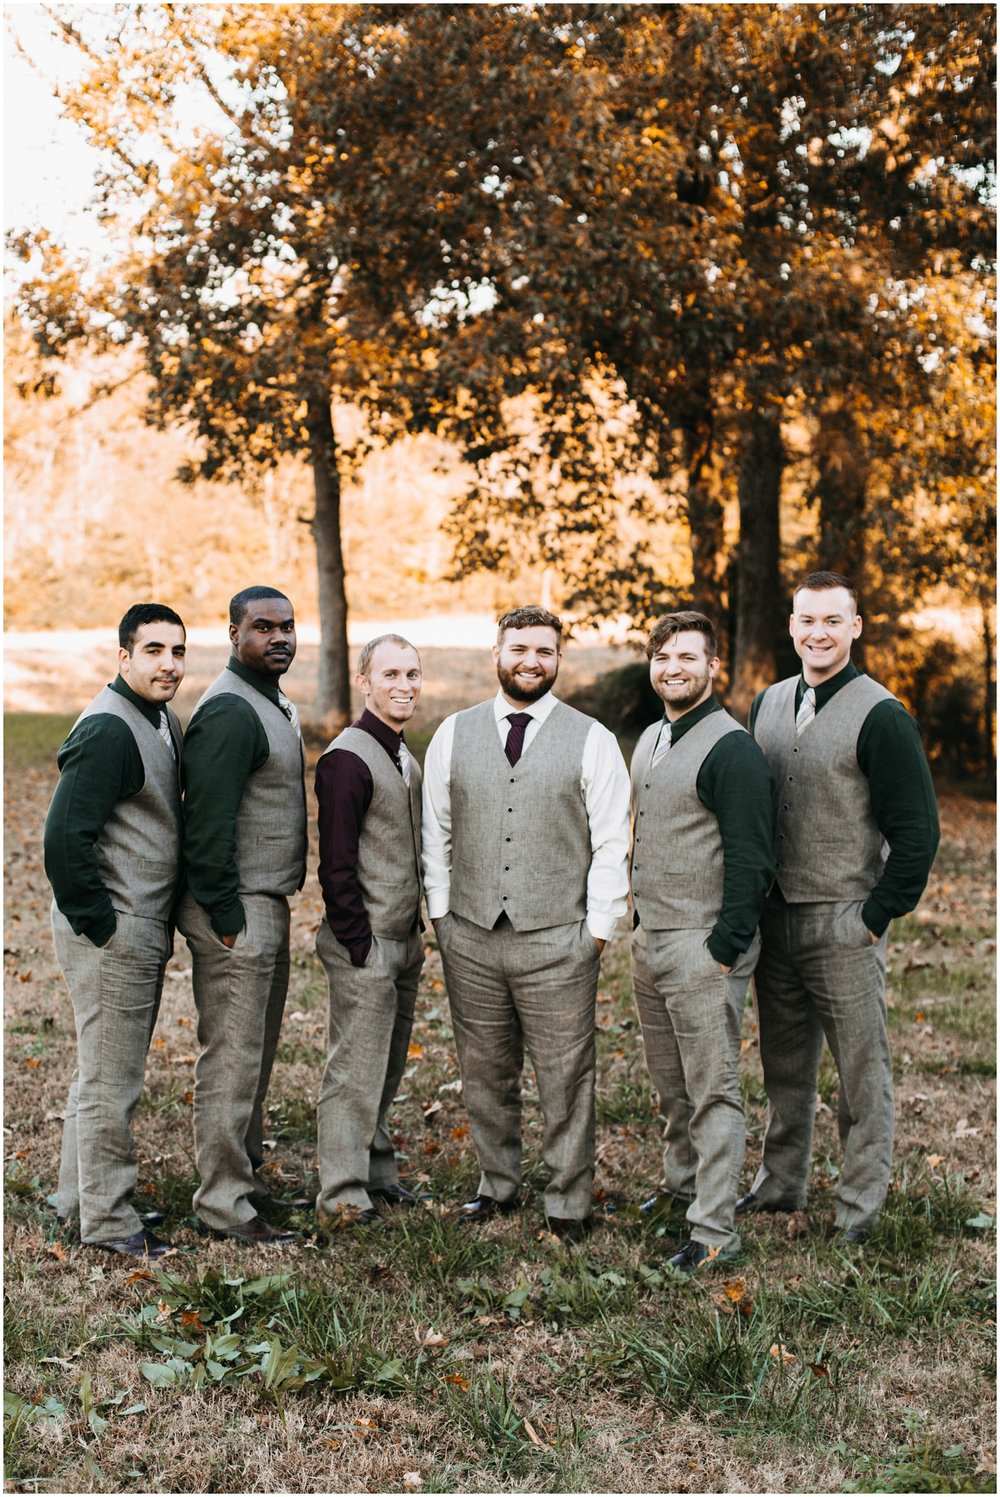 Jess+Dan_rustic_southern_farm_fall_wedding_charlotte_north carolina_taylor powers_0128.jpg